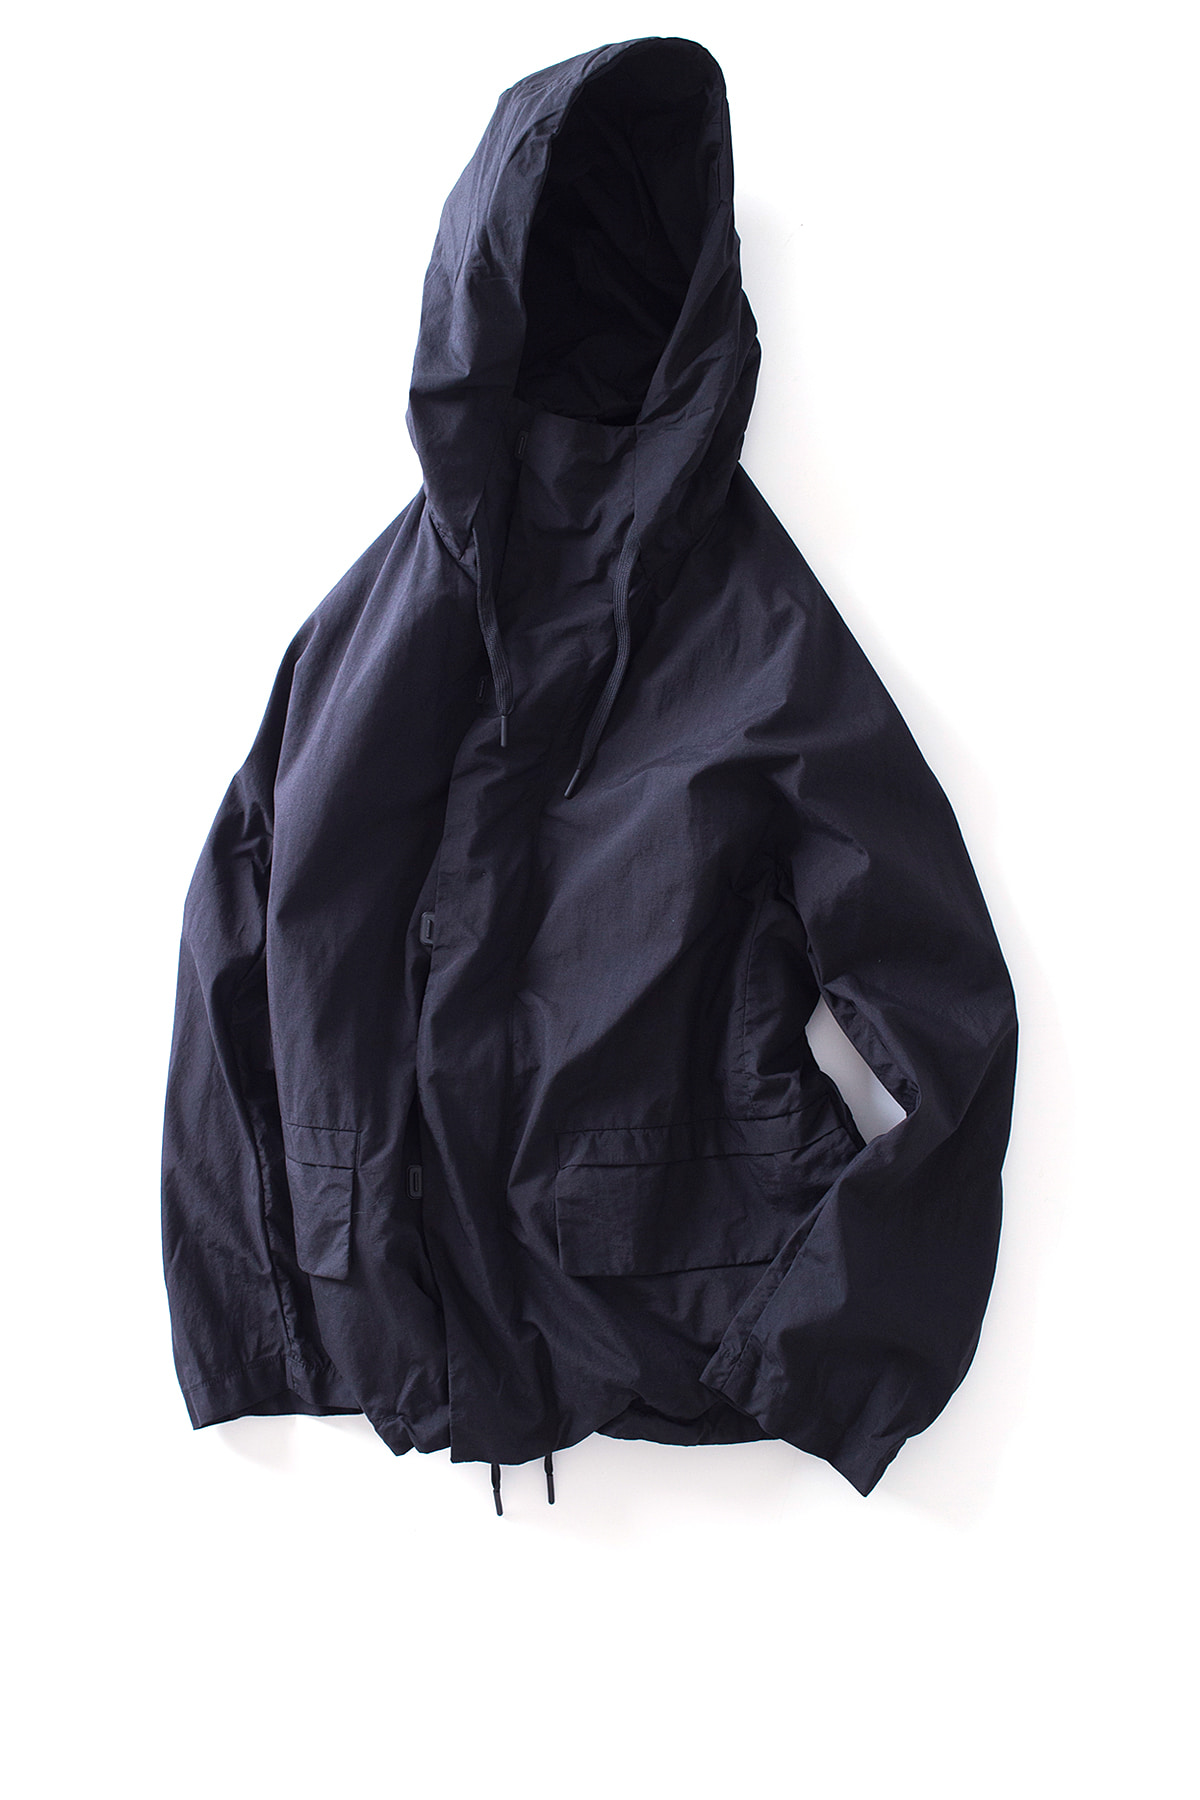 TEATORA : Souvenir Hunter S/L P (Black)